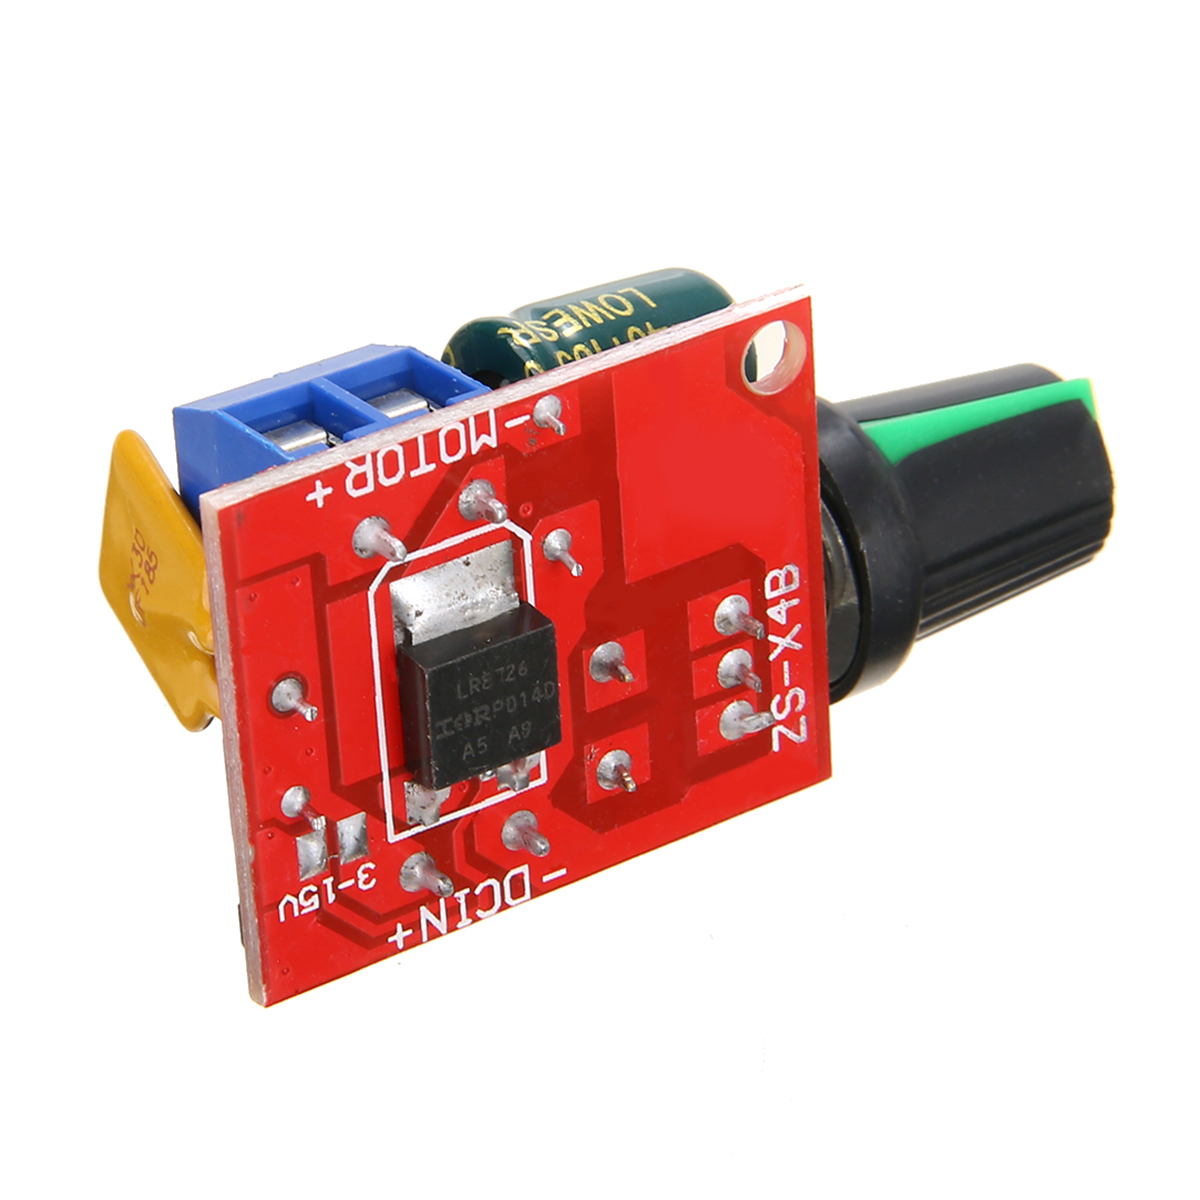 Electrical Motor Speed Controller Module 3-35V 12V 24V PWM DC Motor Speed Control Regulator Adjustable Switch LED Fan Dimmer